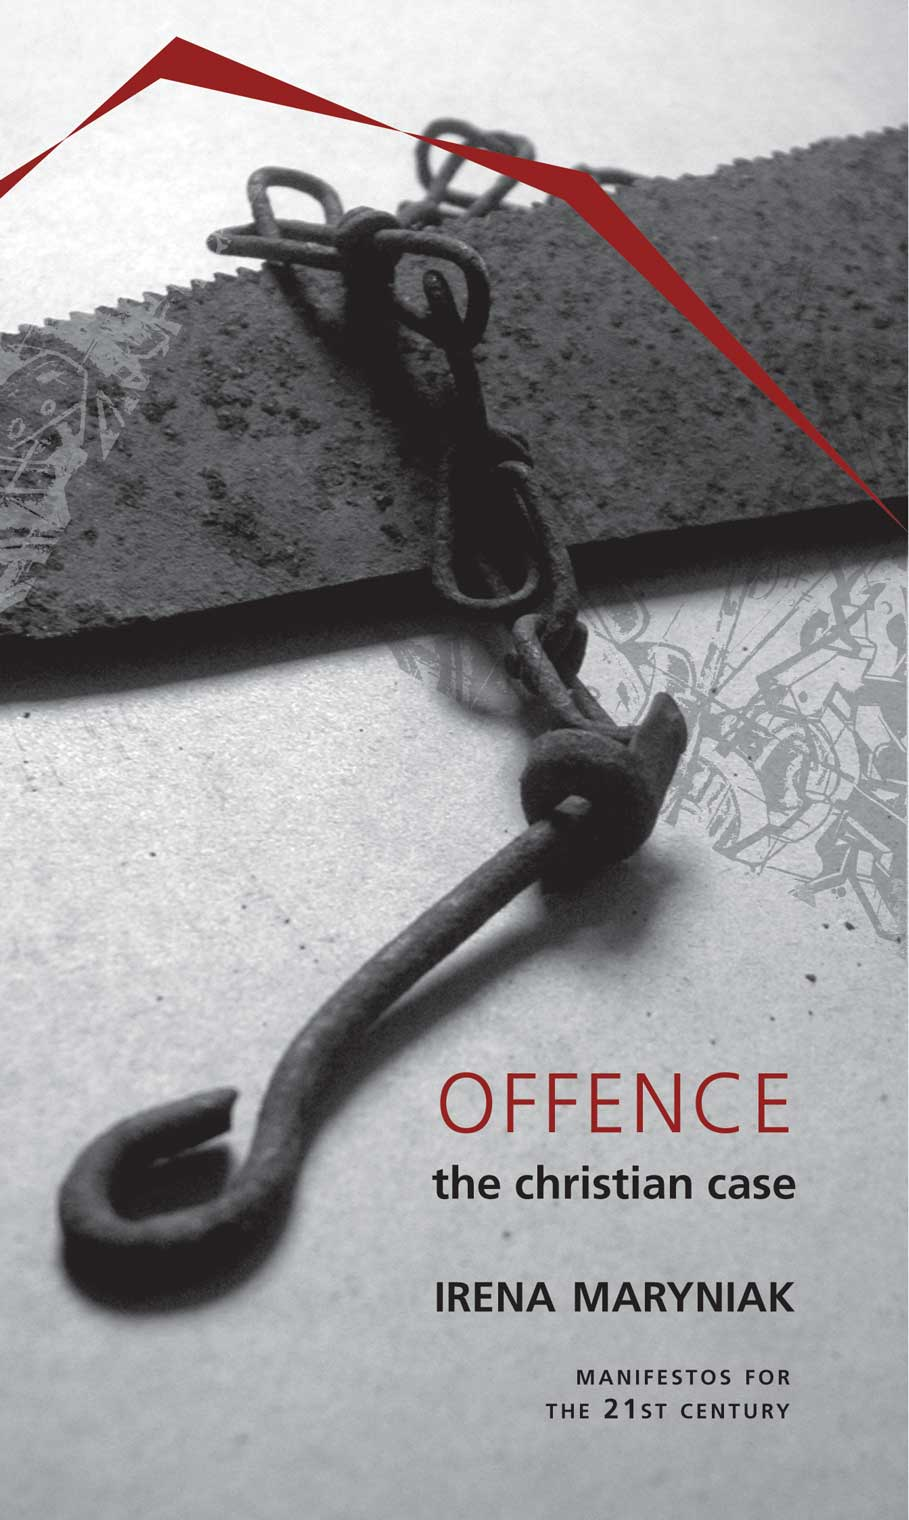 Offence: The Christian Case by Irena Maryniak | Seagull Books